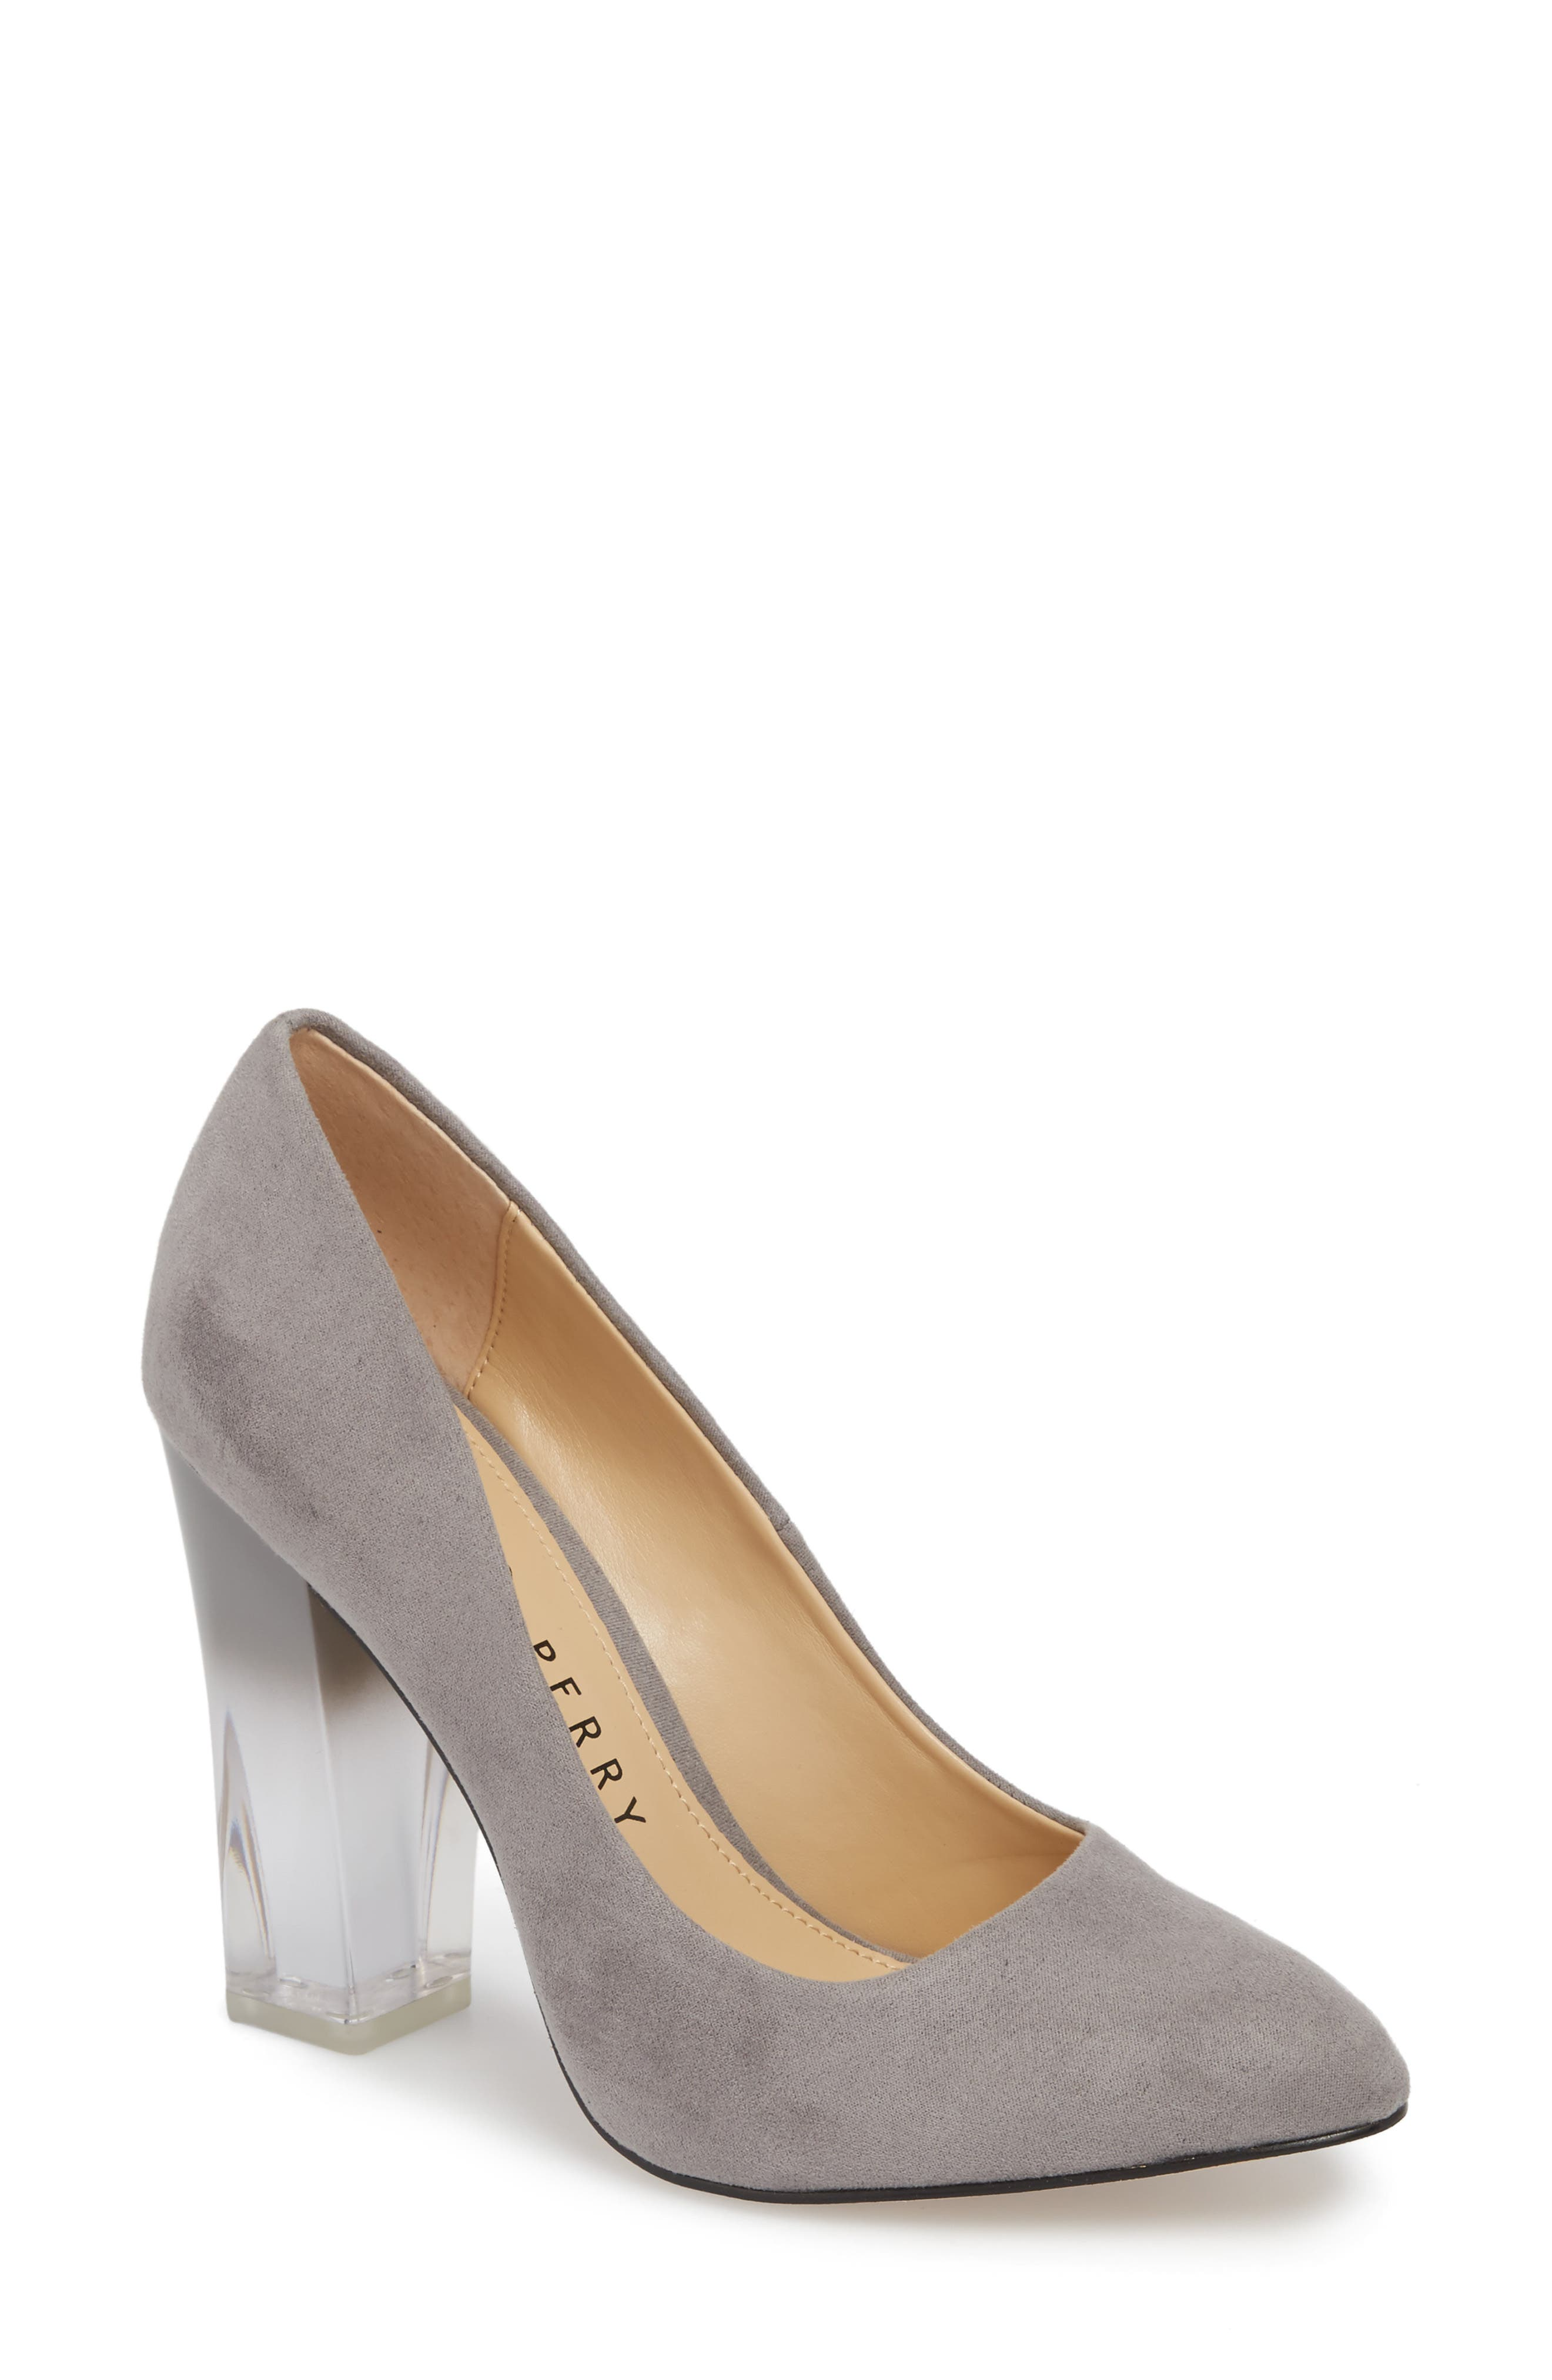 Katy Perry Statement Heel Pump (Women)